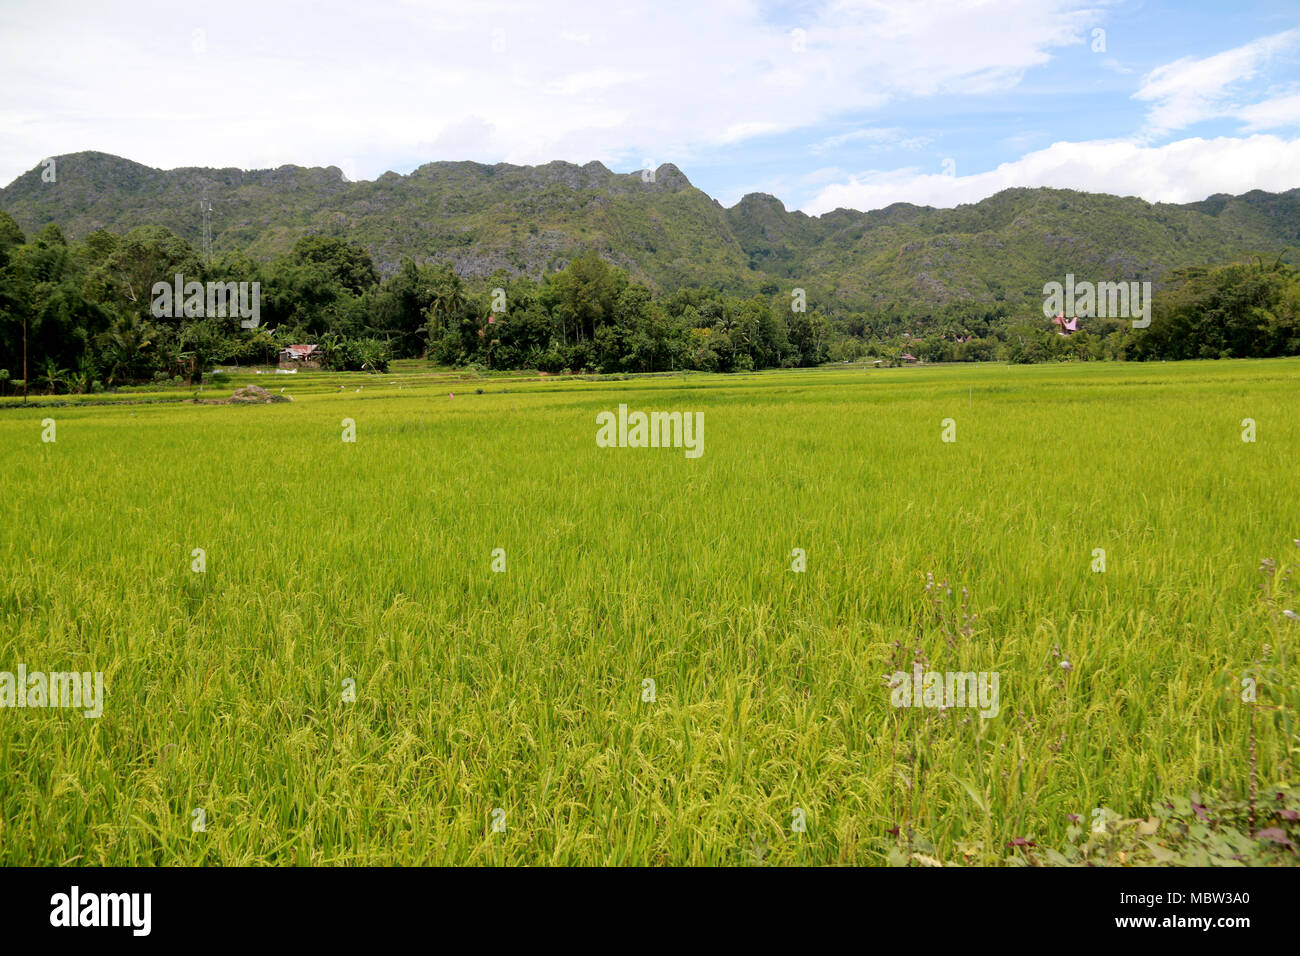 Countryside on Sulawesi: Mountain Ranges and Rice Fields in Toraja, Sulawesi, Indonesia - Stock Image